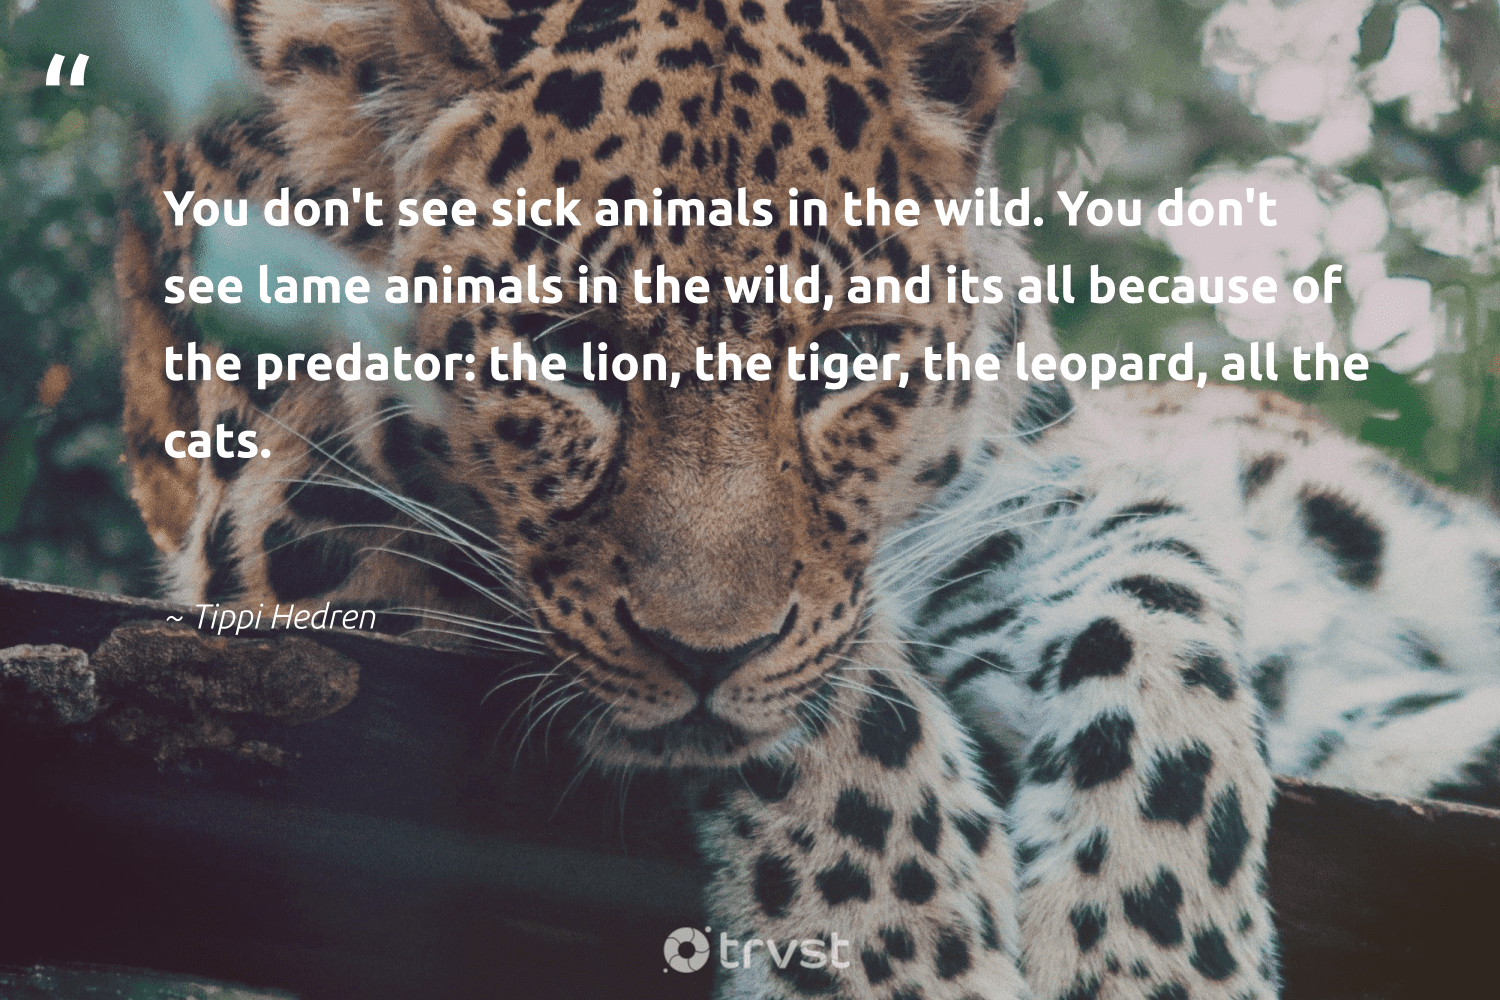 """""""You don't see sick animals in the wild. You don't see lame animals in the wild, and its all because of the predator: the lion, the tiger, the leopard, all the cats.""""  - Tippi Hedren #trvst #quotes #tiger #animals #leopard #wild #wildlife #biodiversity #nature #bethechange #animallovers #leopards"""